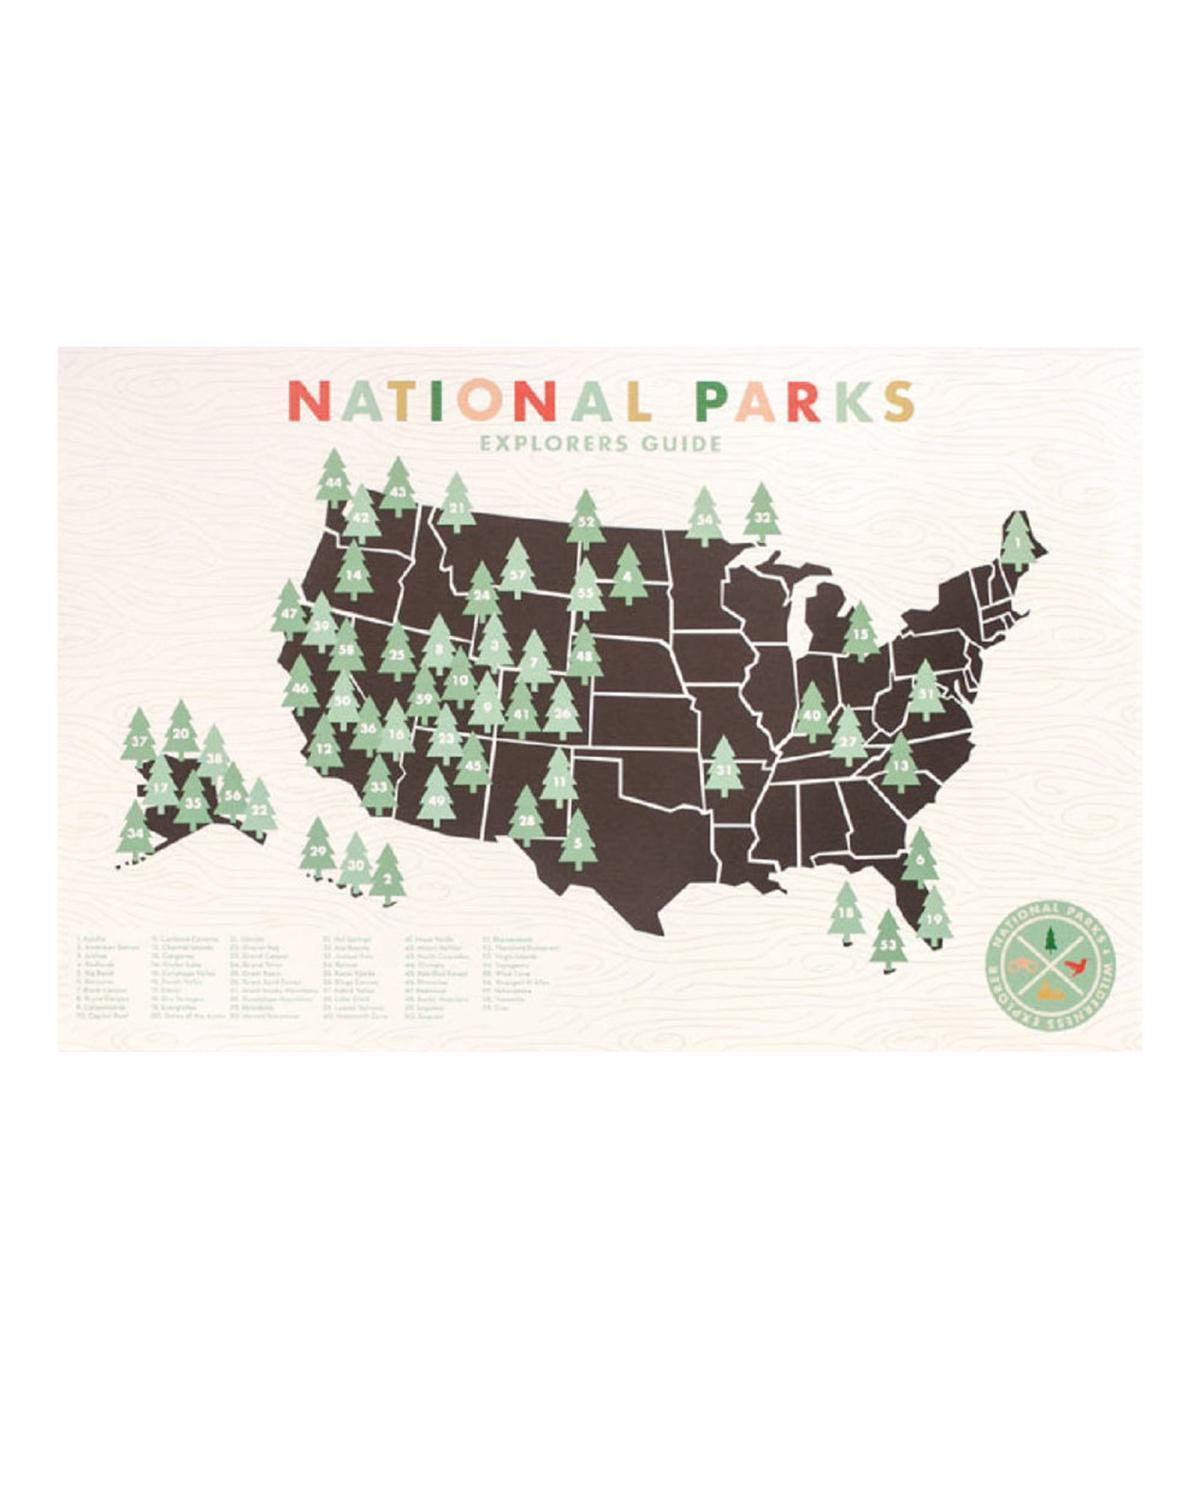 Little ello there room National Parks Map